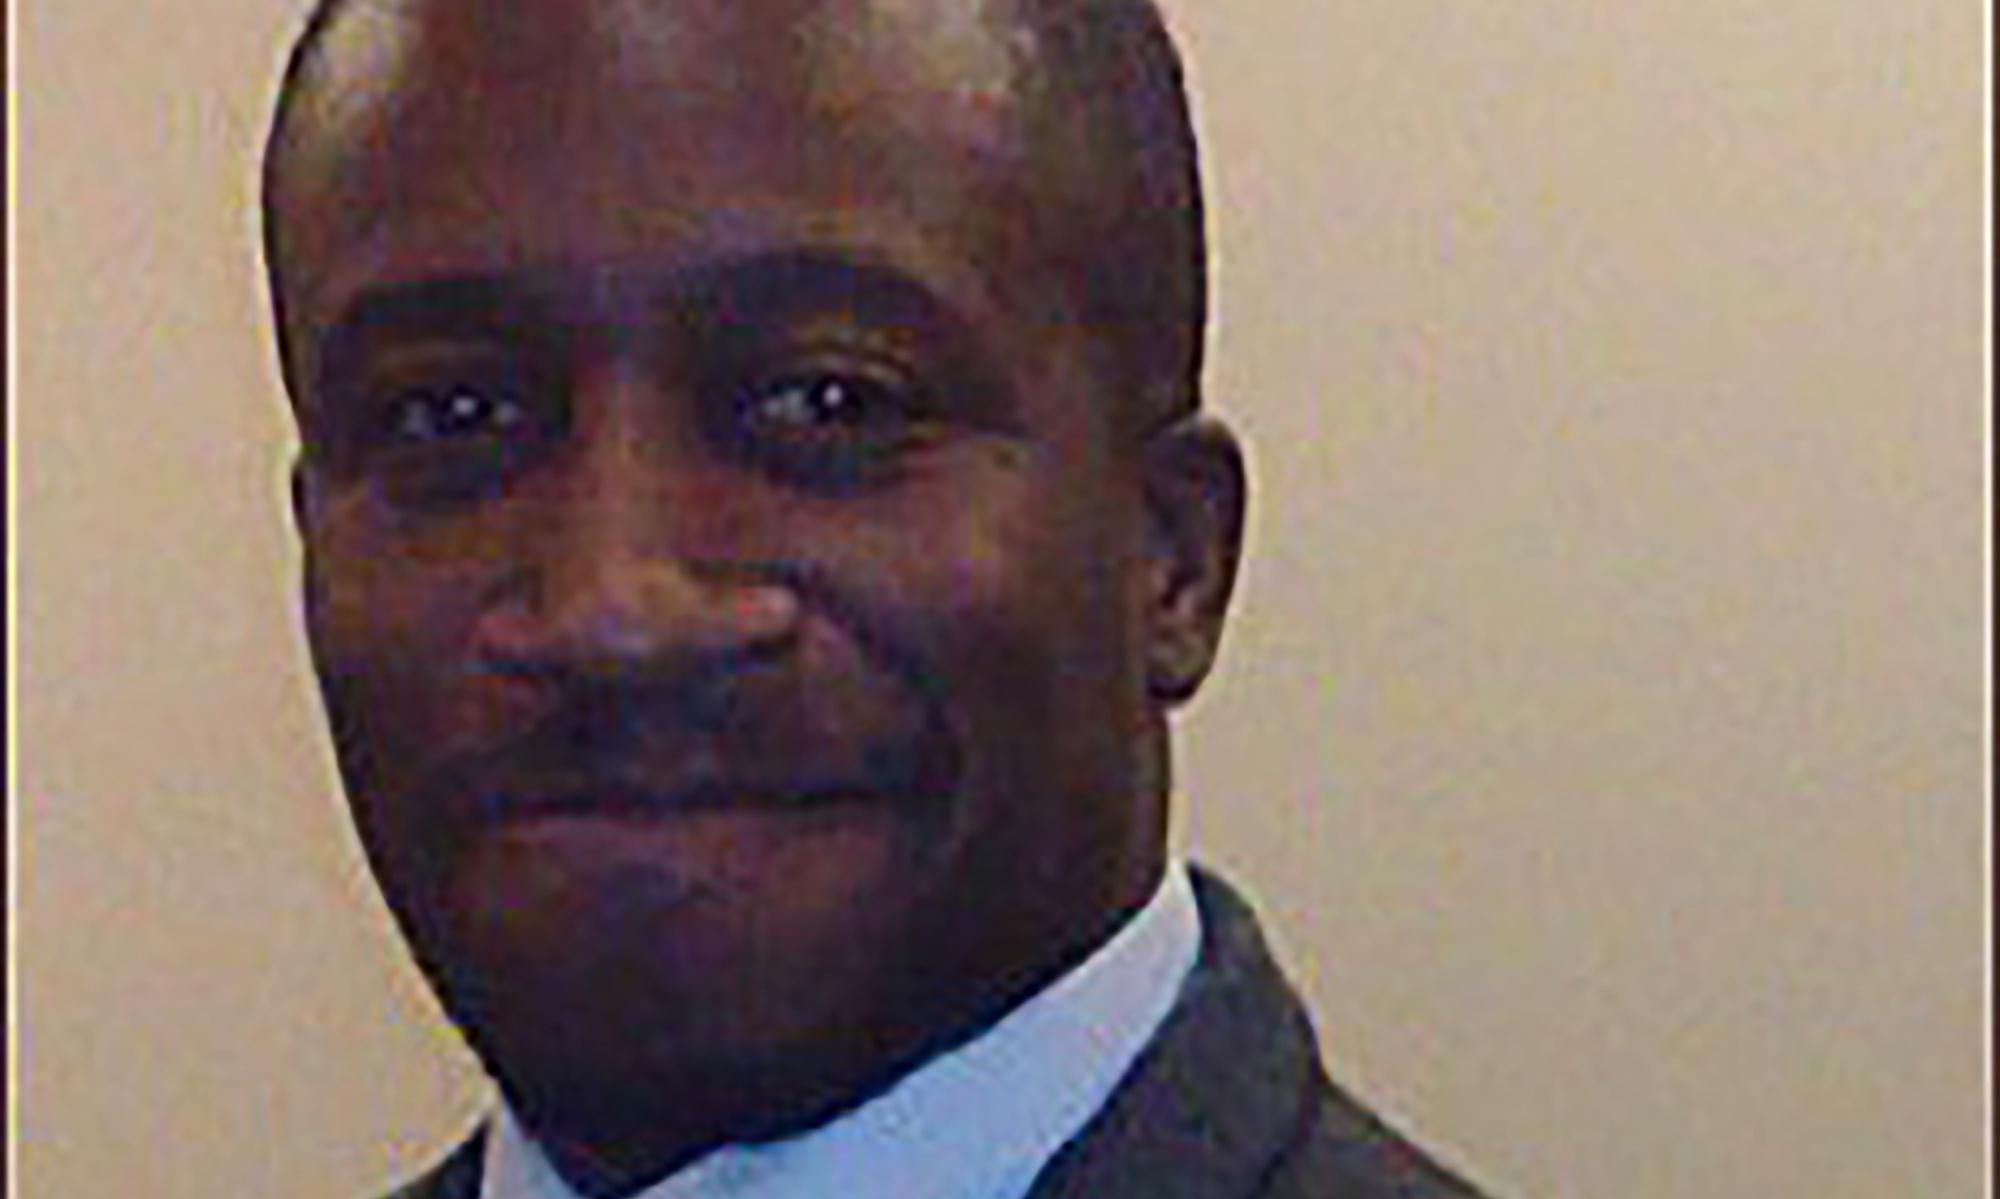 Officer would have sent man straight to hospital, inquest hears